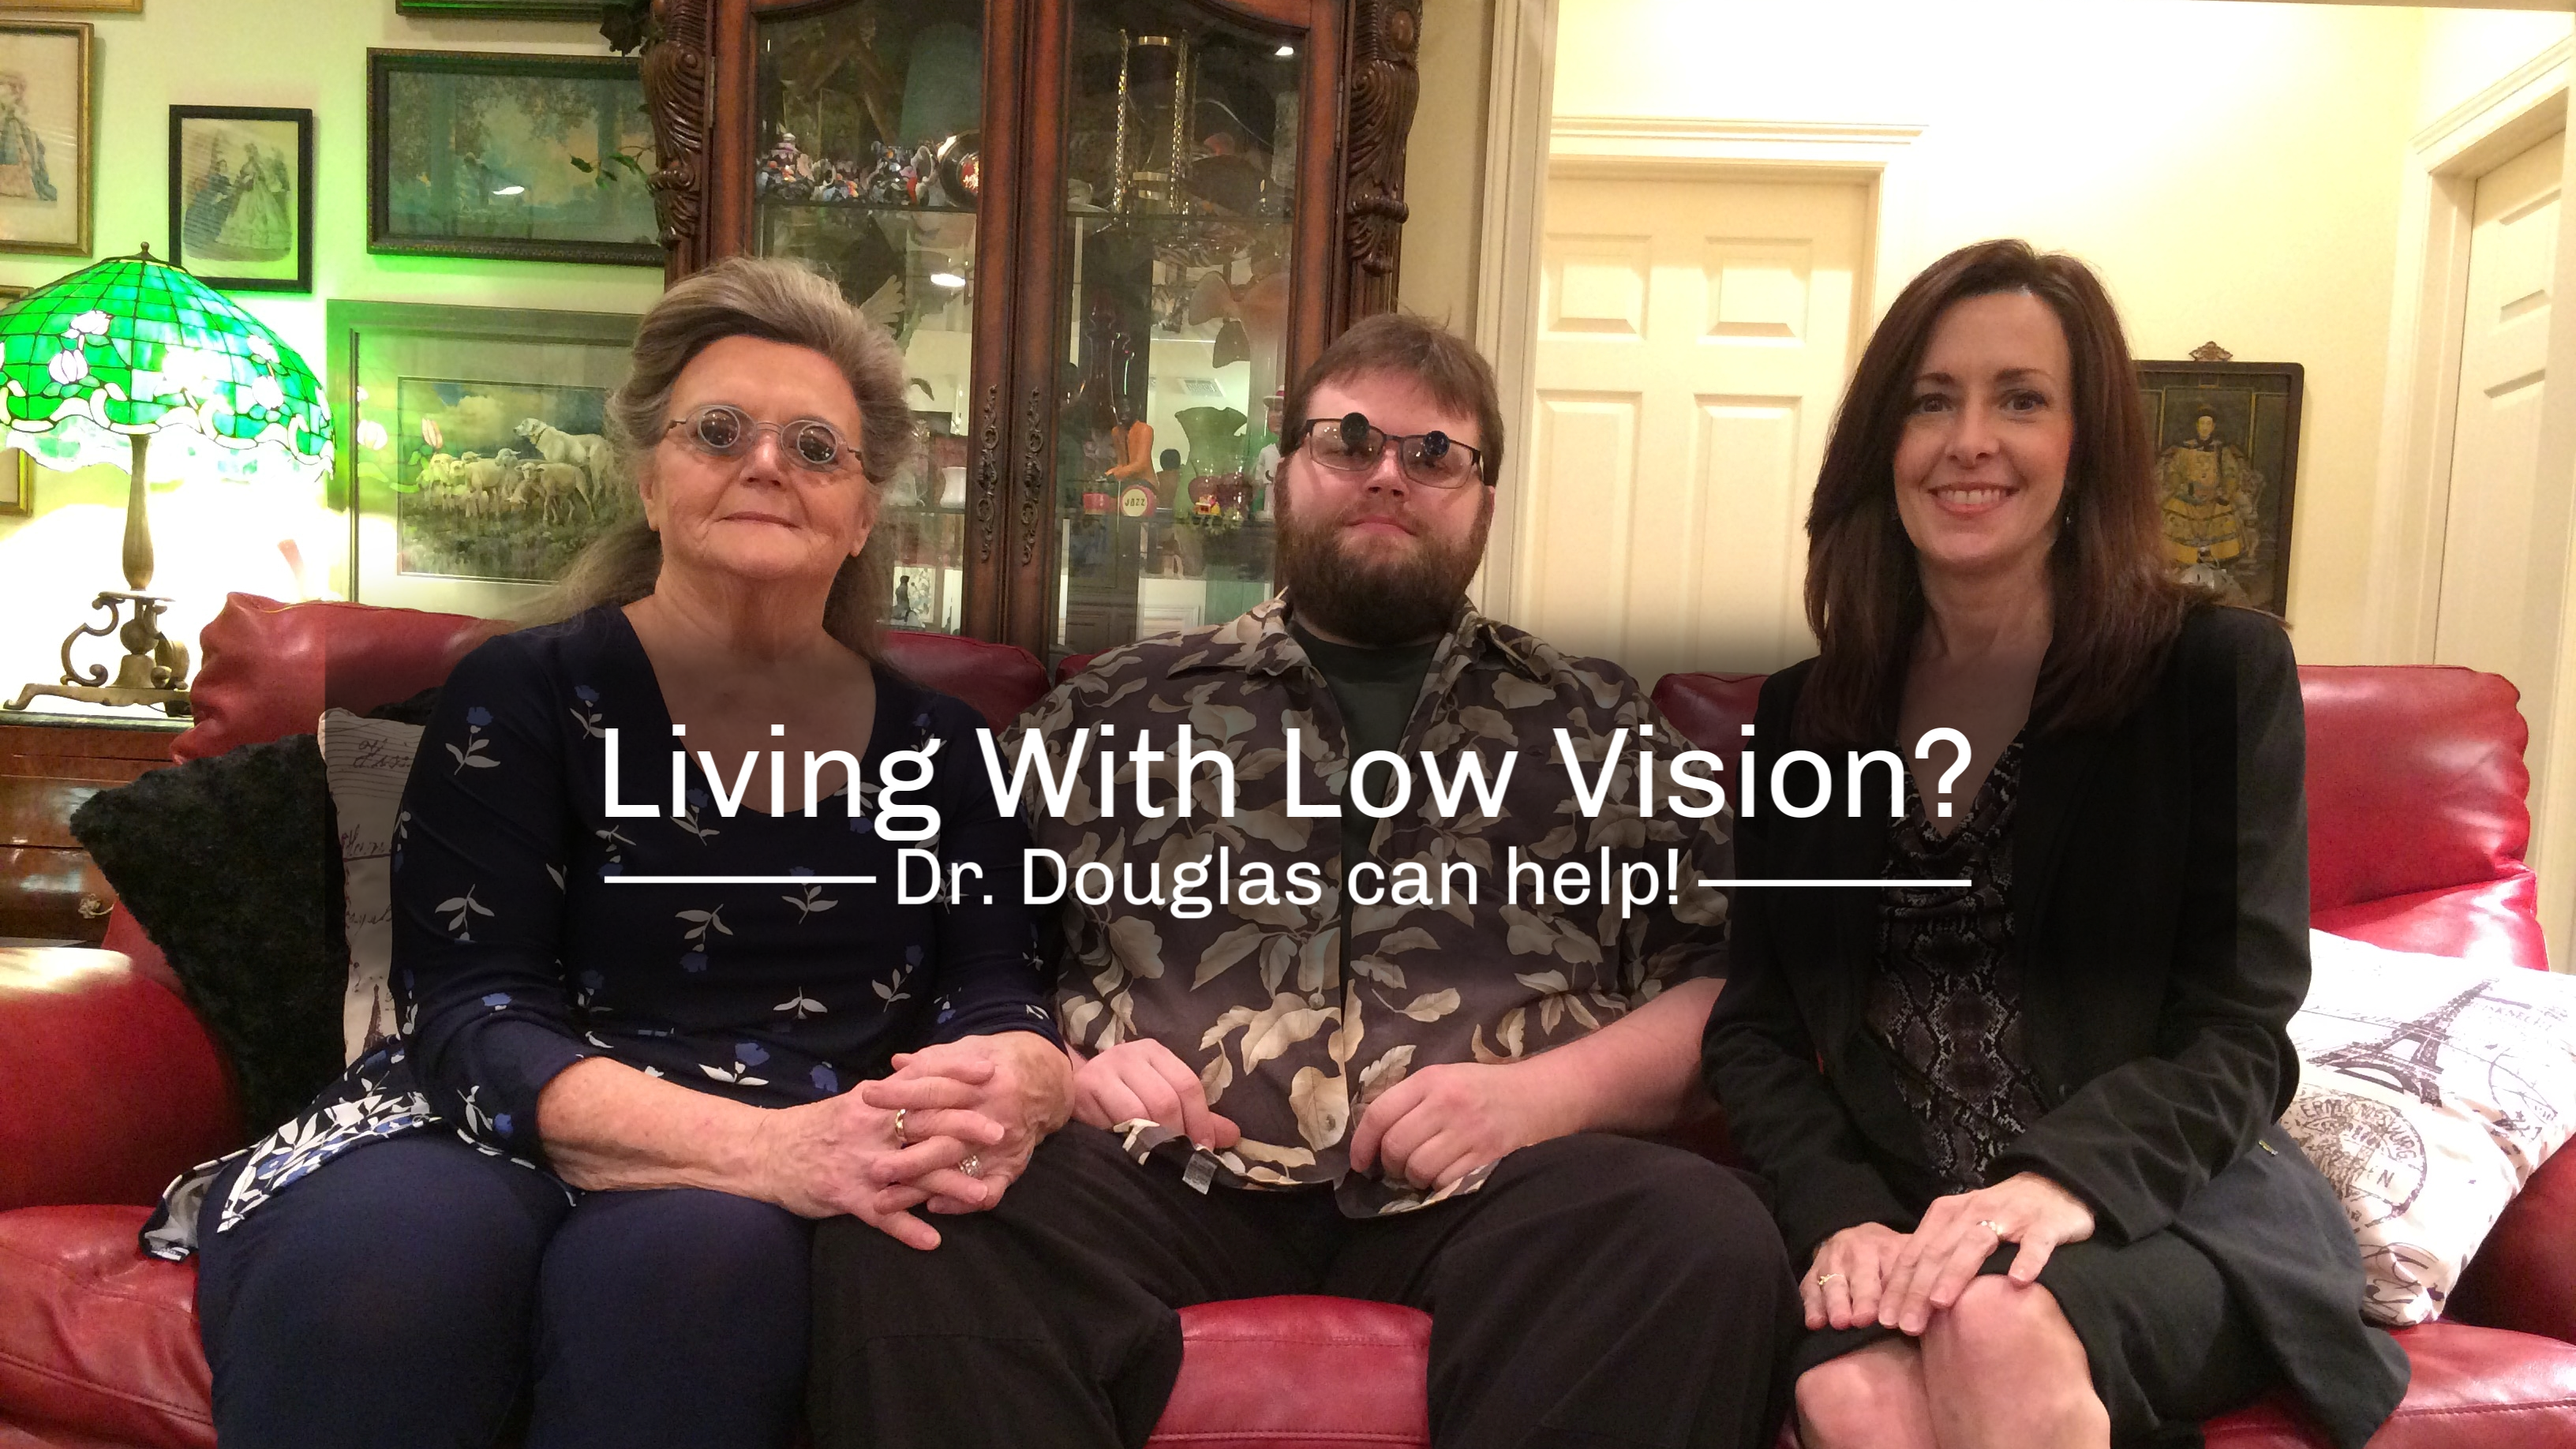 Dr-Douglas-and-patients-on-sofa.png